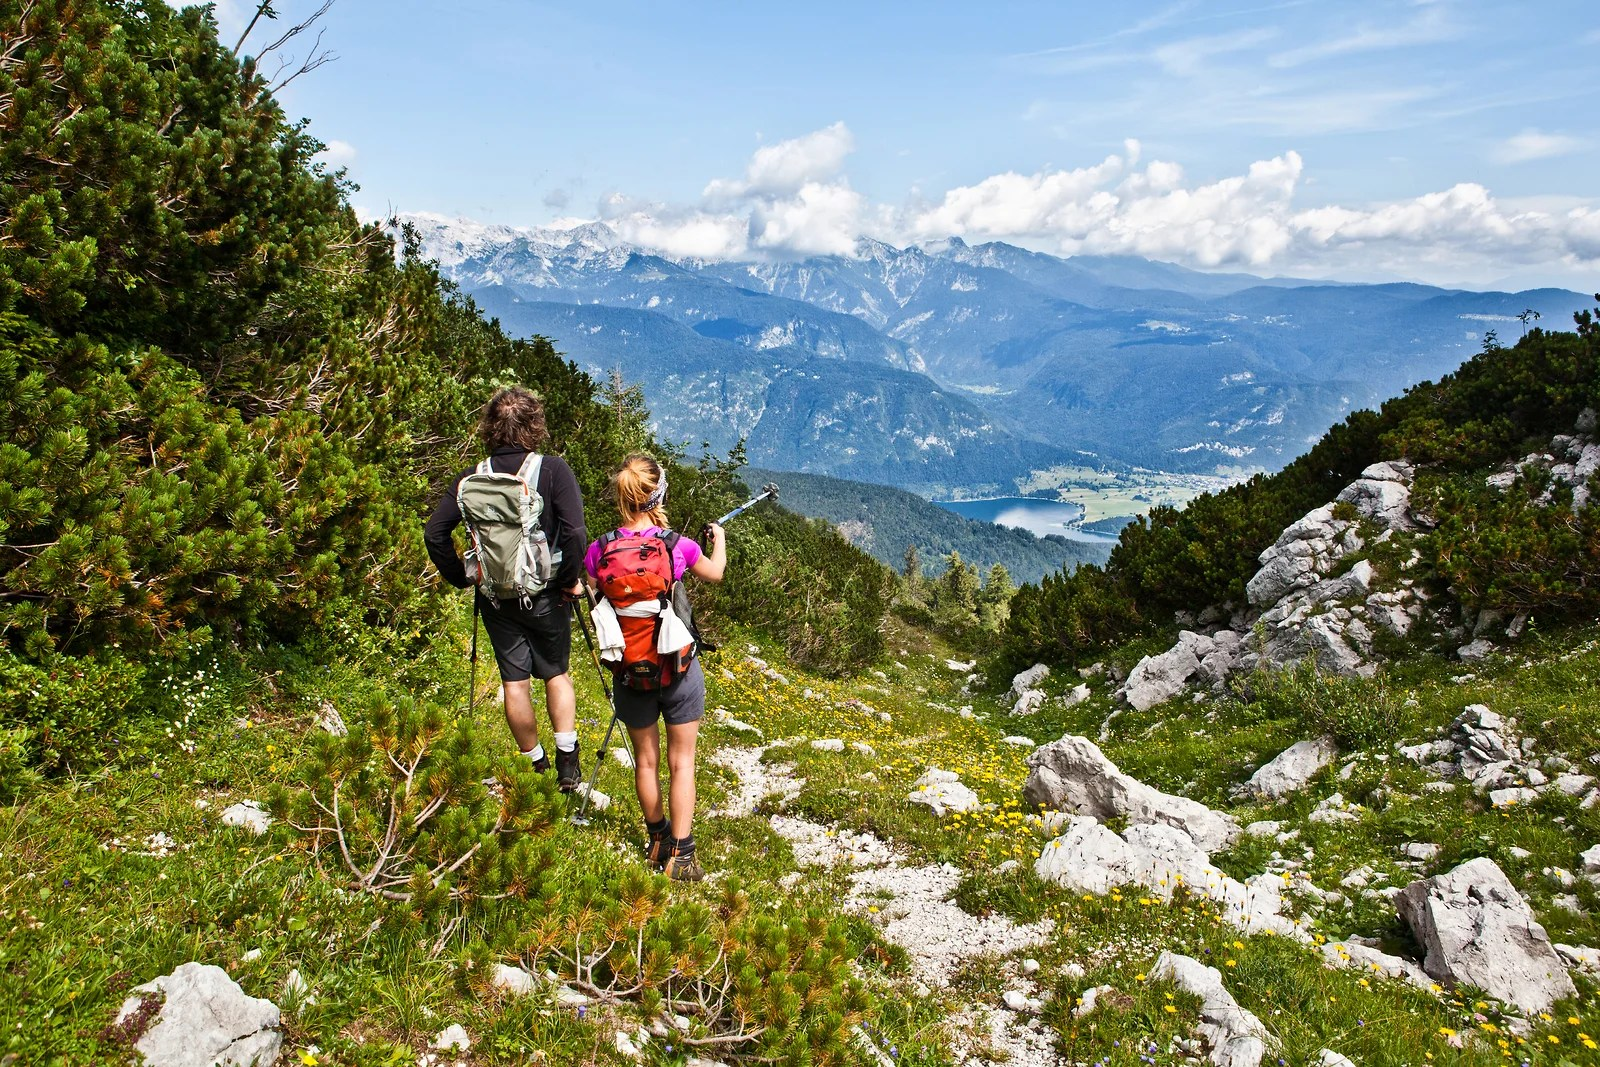 Slovenia Just Opened a 186-Mile Hiking Trail With Stunning Views of the Alps